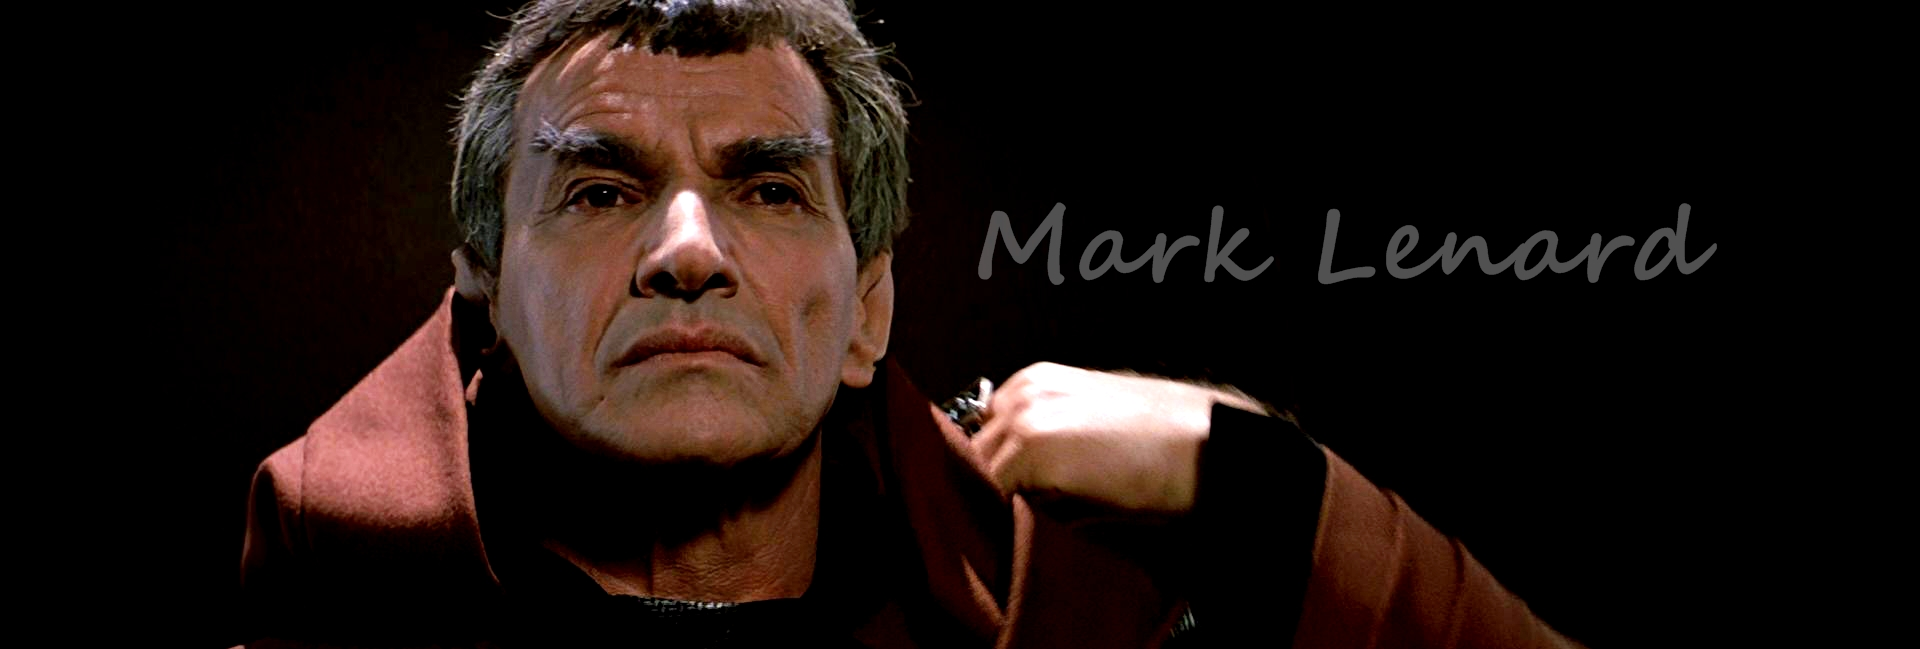 mark lenard planet of the apes